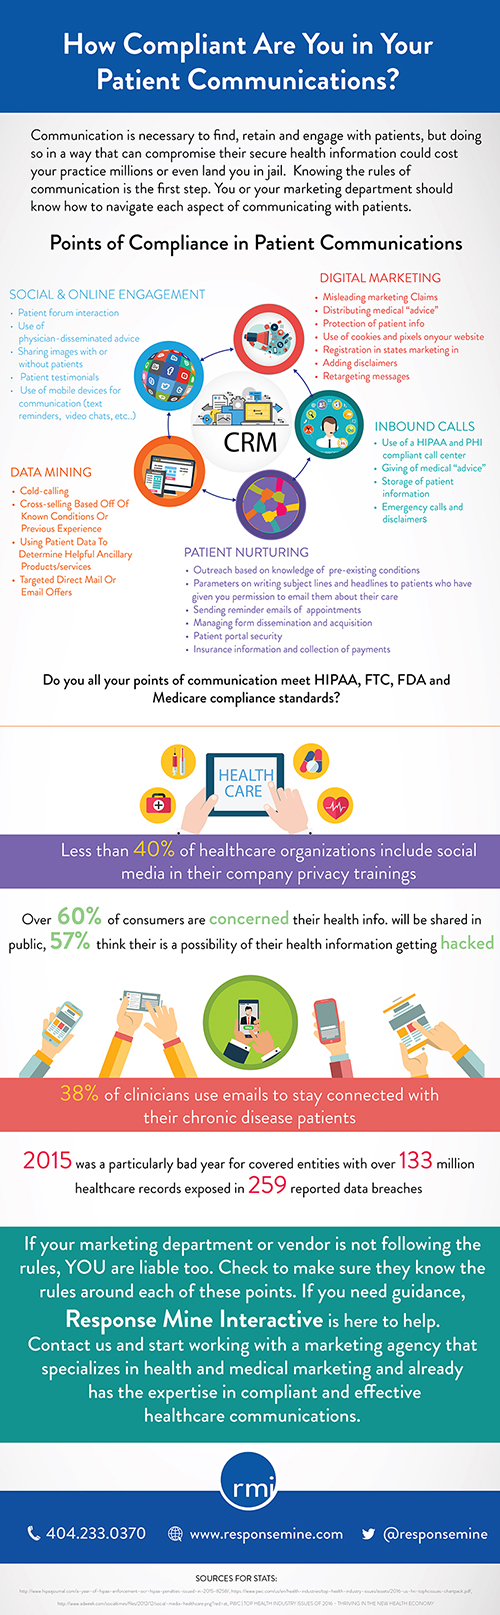 Patient Communication Compliance Infographic